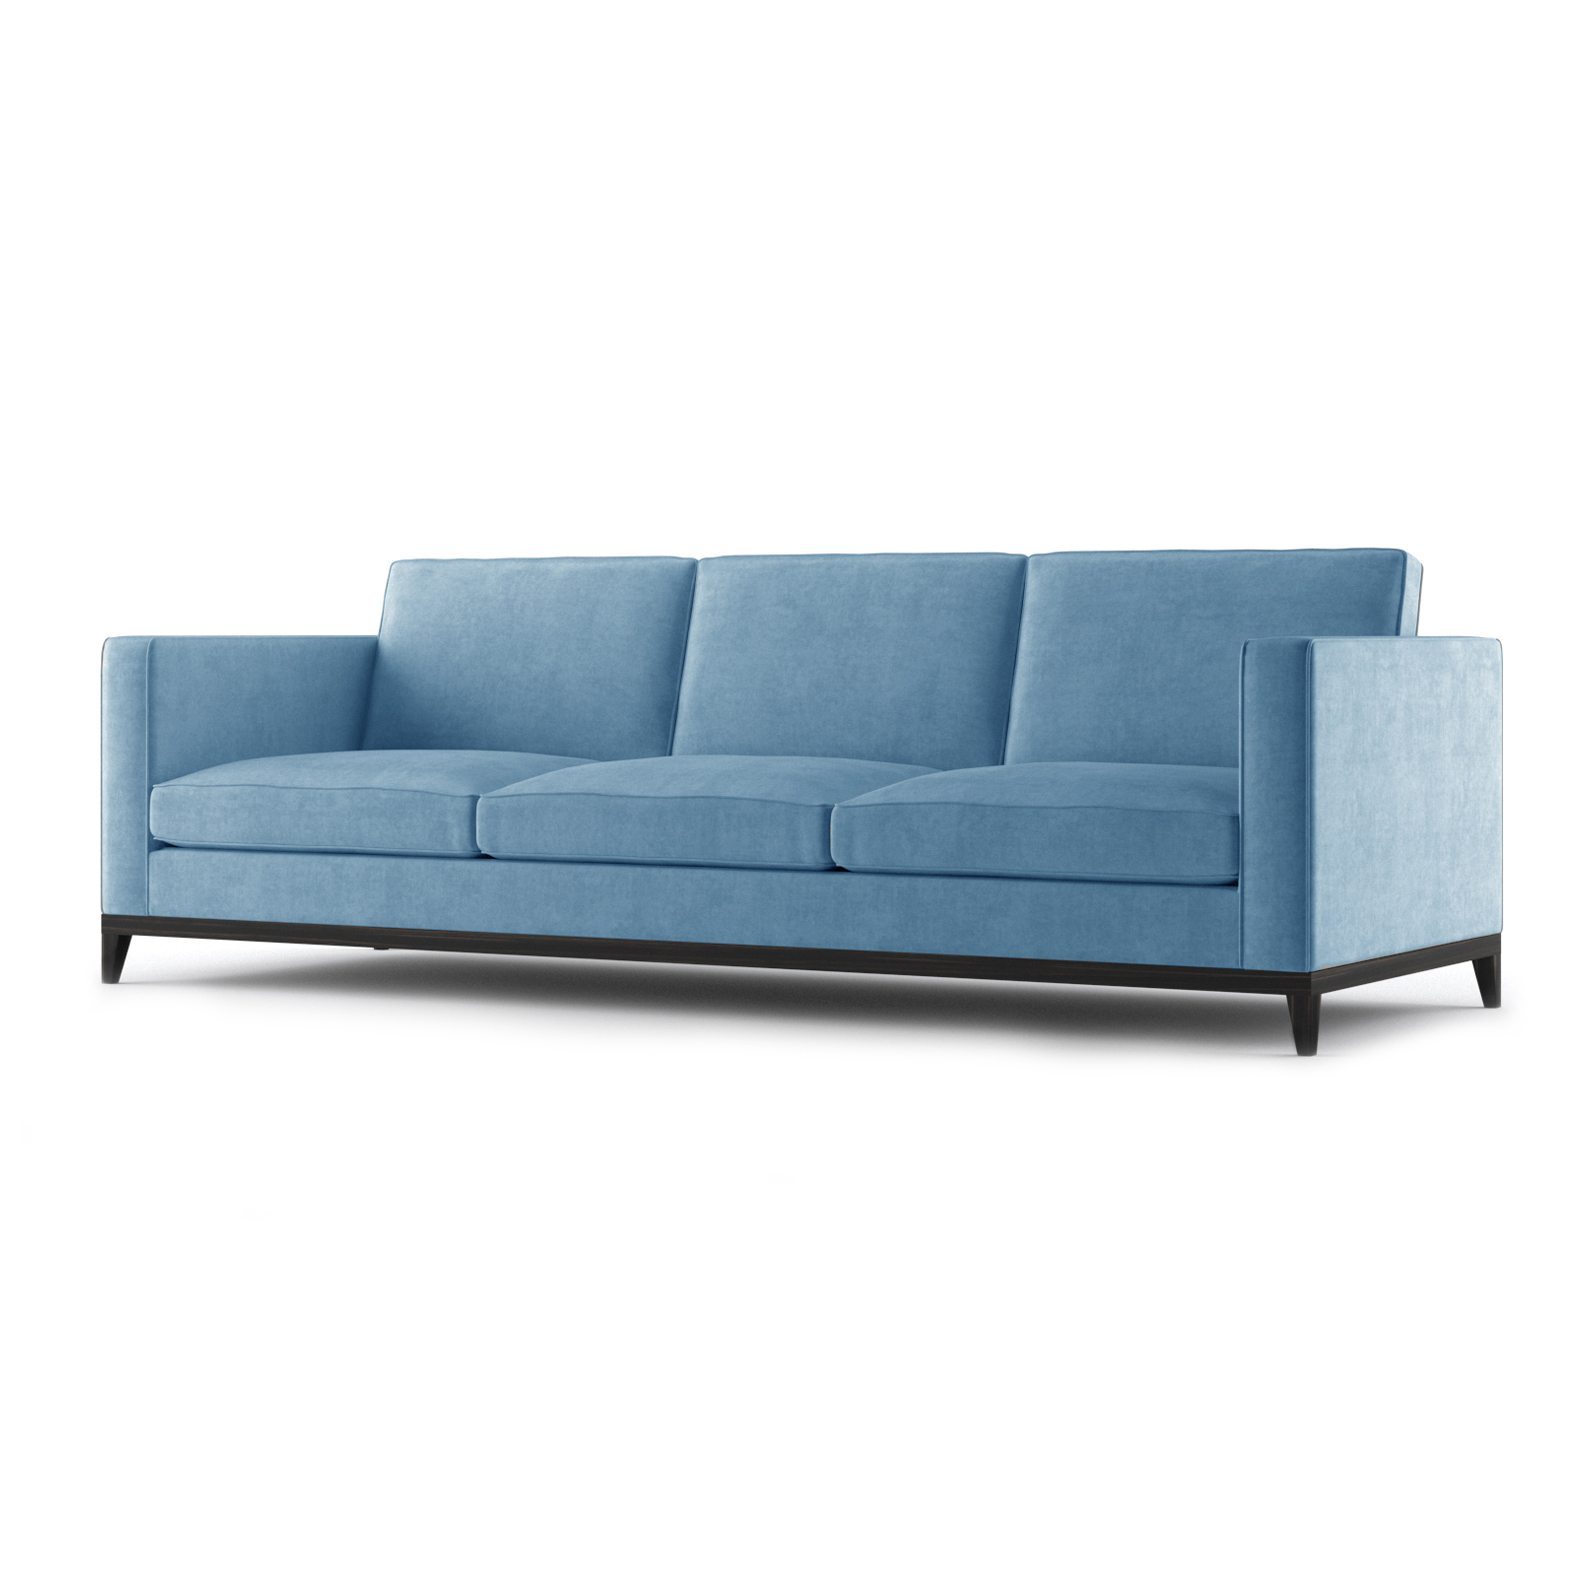 Armstrong Three and a Half Seater Sofa by Bonham & Bonham Blue 02